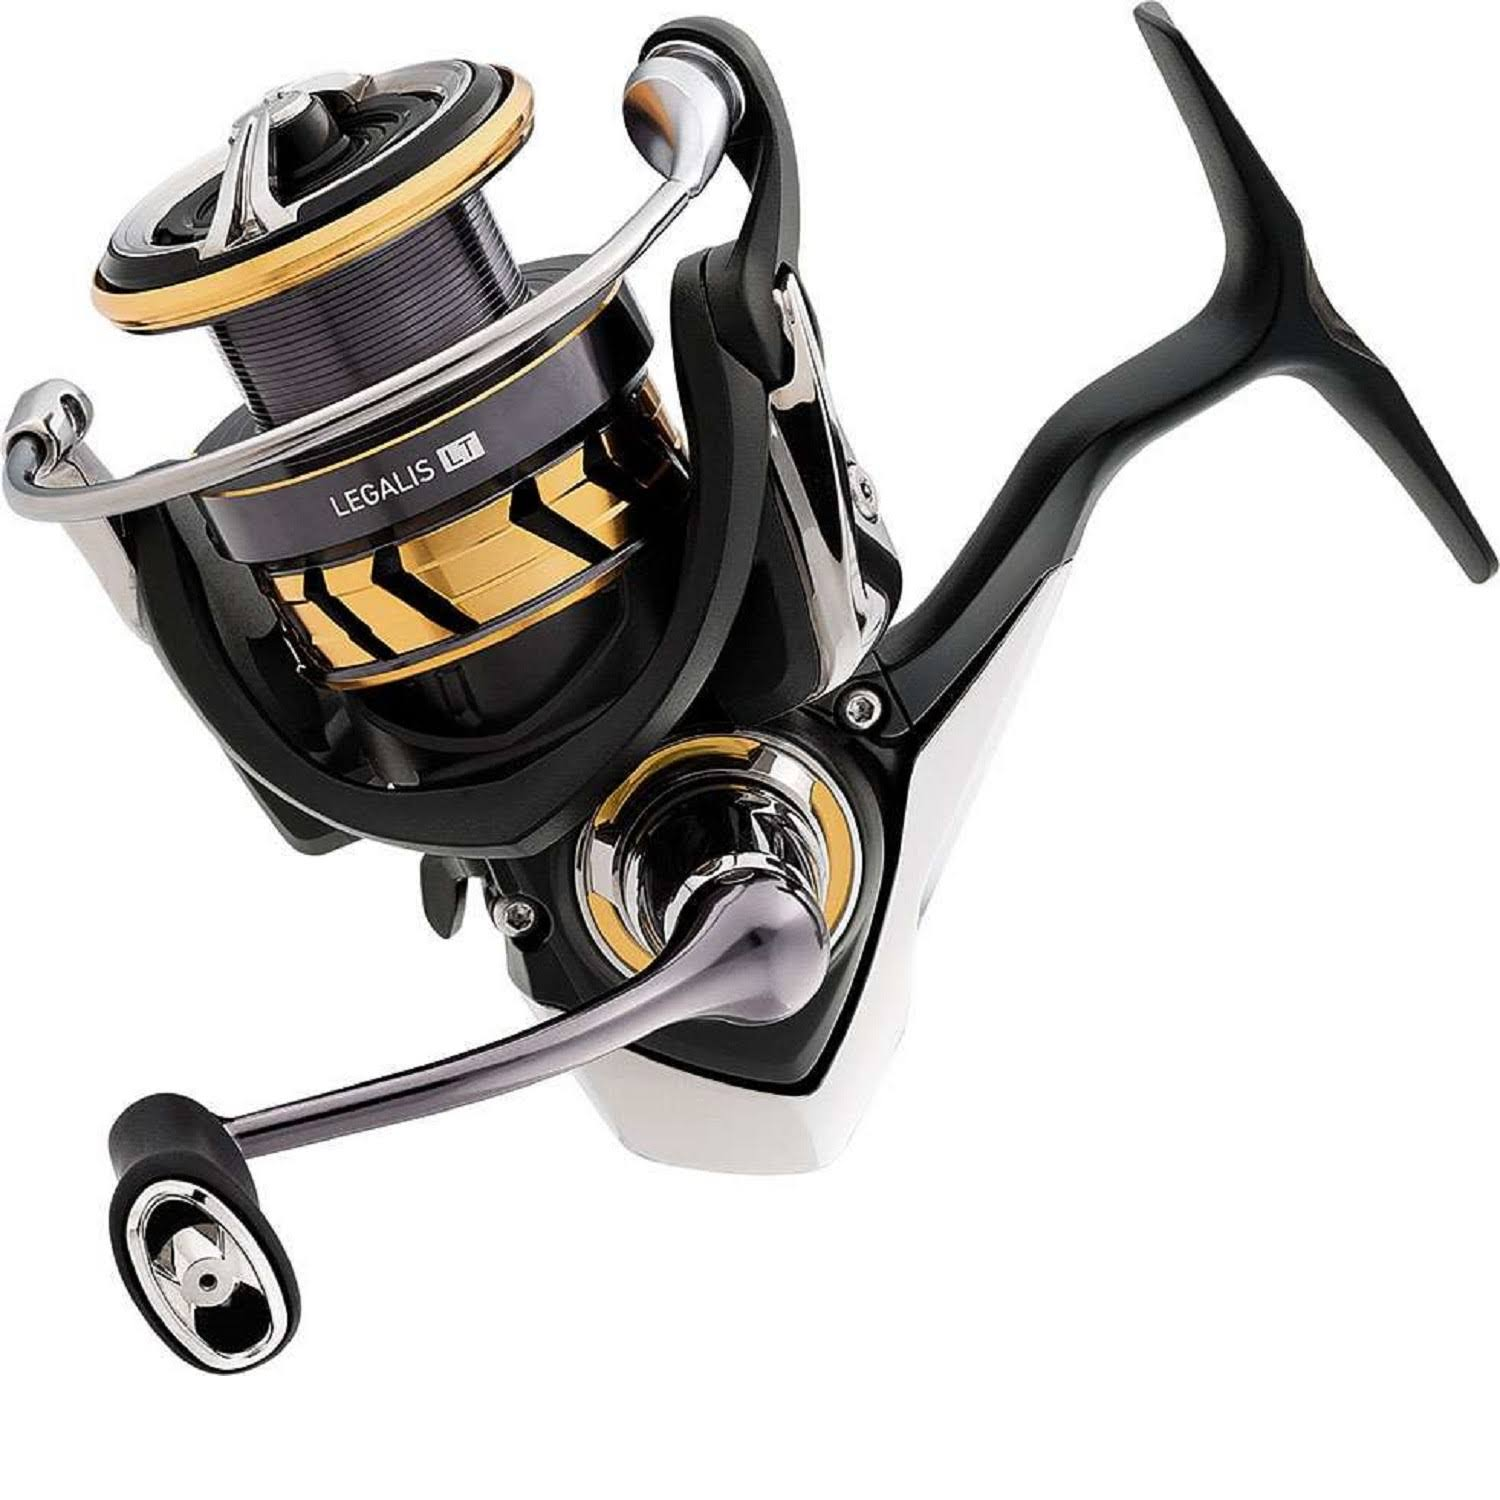 Daiwa Legalis LT 6.2:1 Left Right Hand Spinning Fishing Reel